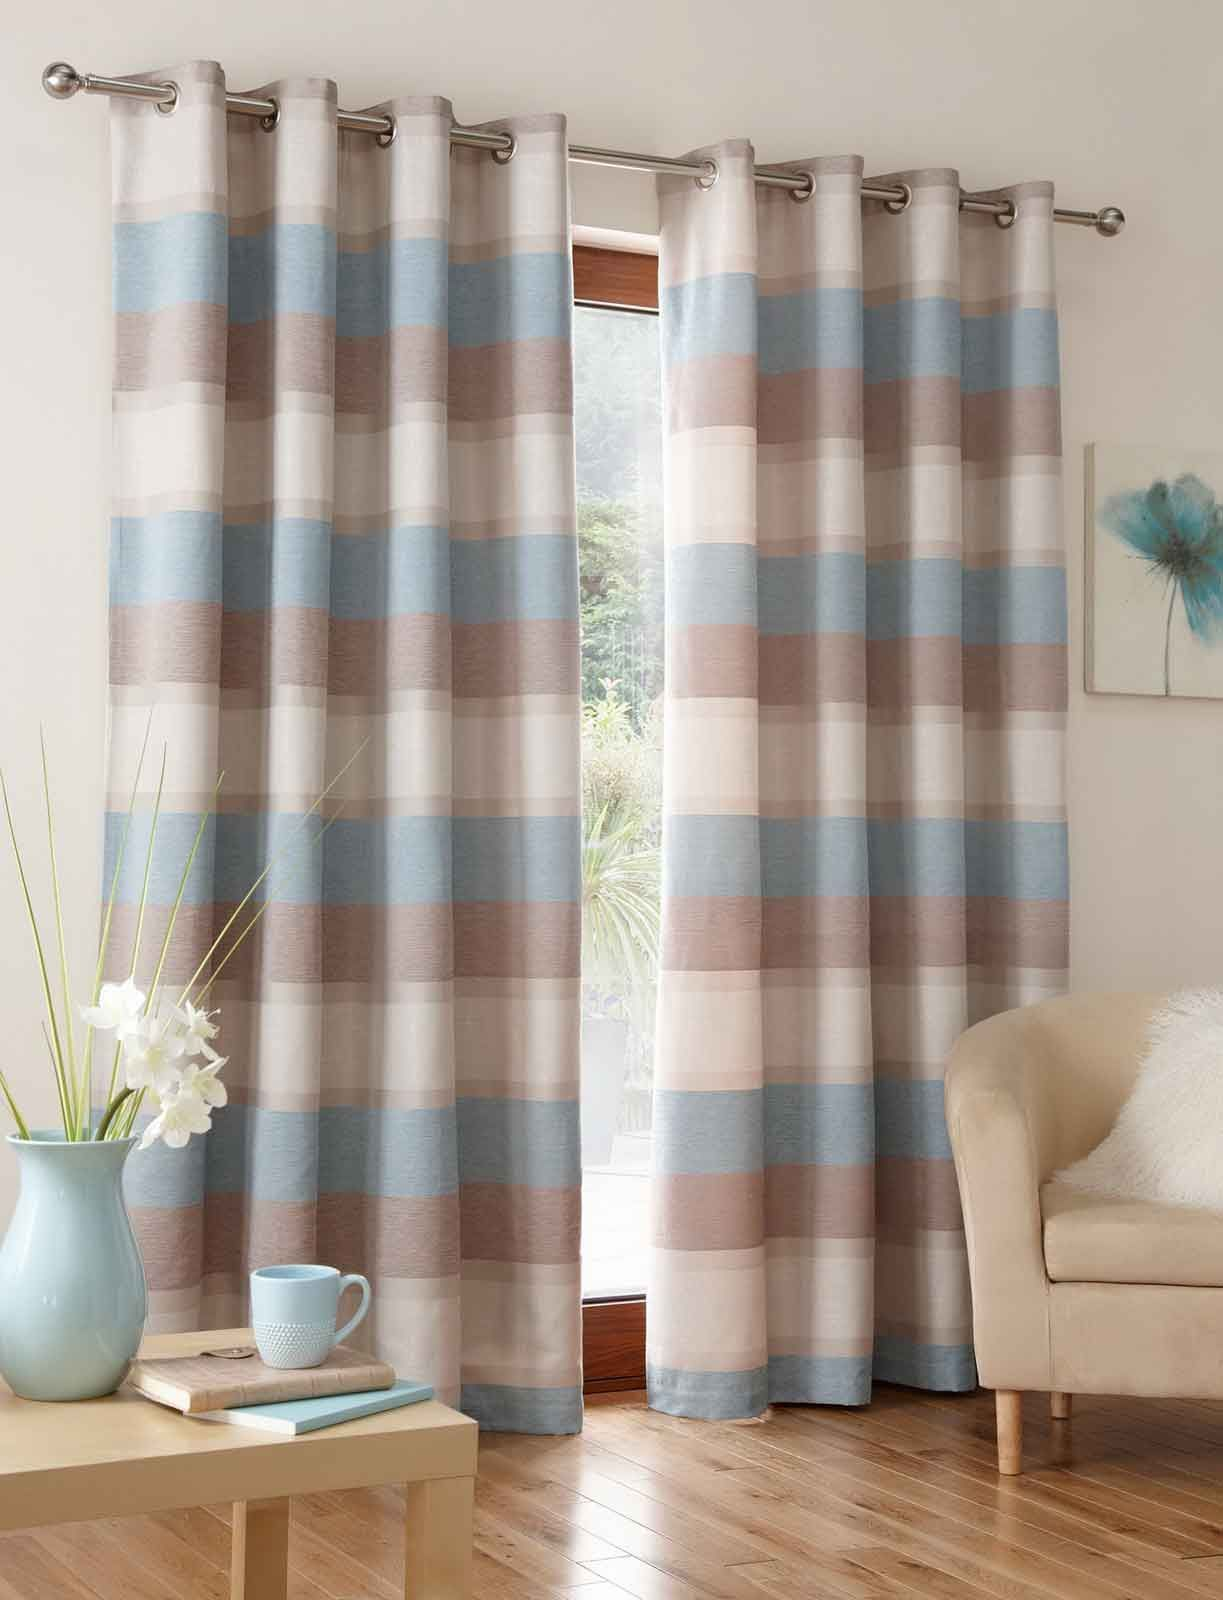 blue brown curtains of blue curtain bedroom combinationblue brown curtains of blue curtain bedroom combination brown and blue curtain bedroom curtainsideasvalance